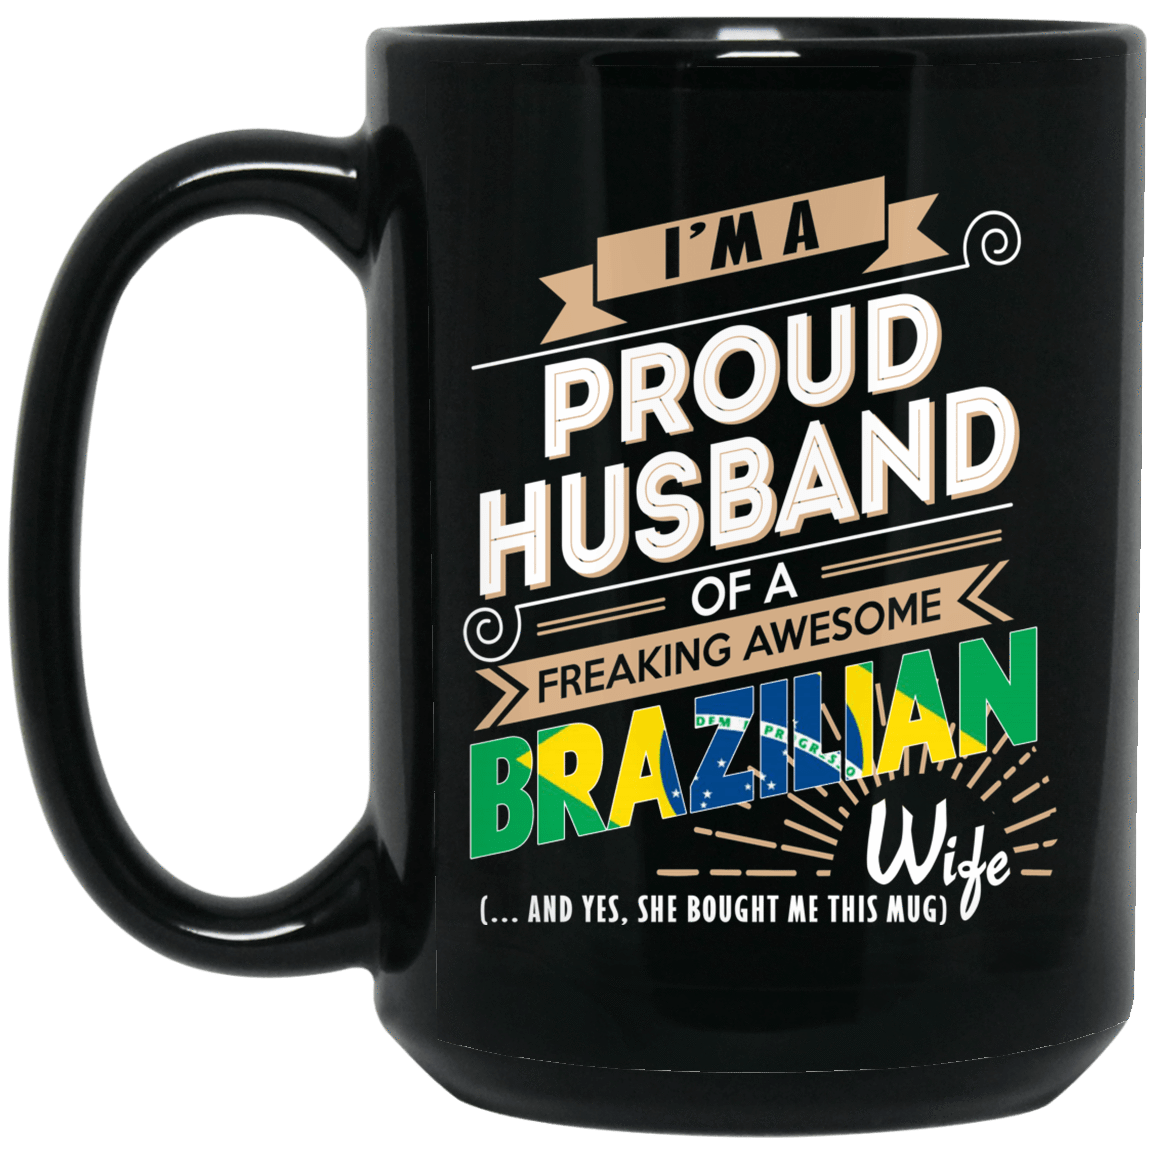 Proud Husband Of A Freaking Awesome Brazilian Wife Mug 1066-10182-72136606-49311 - Tee Ript